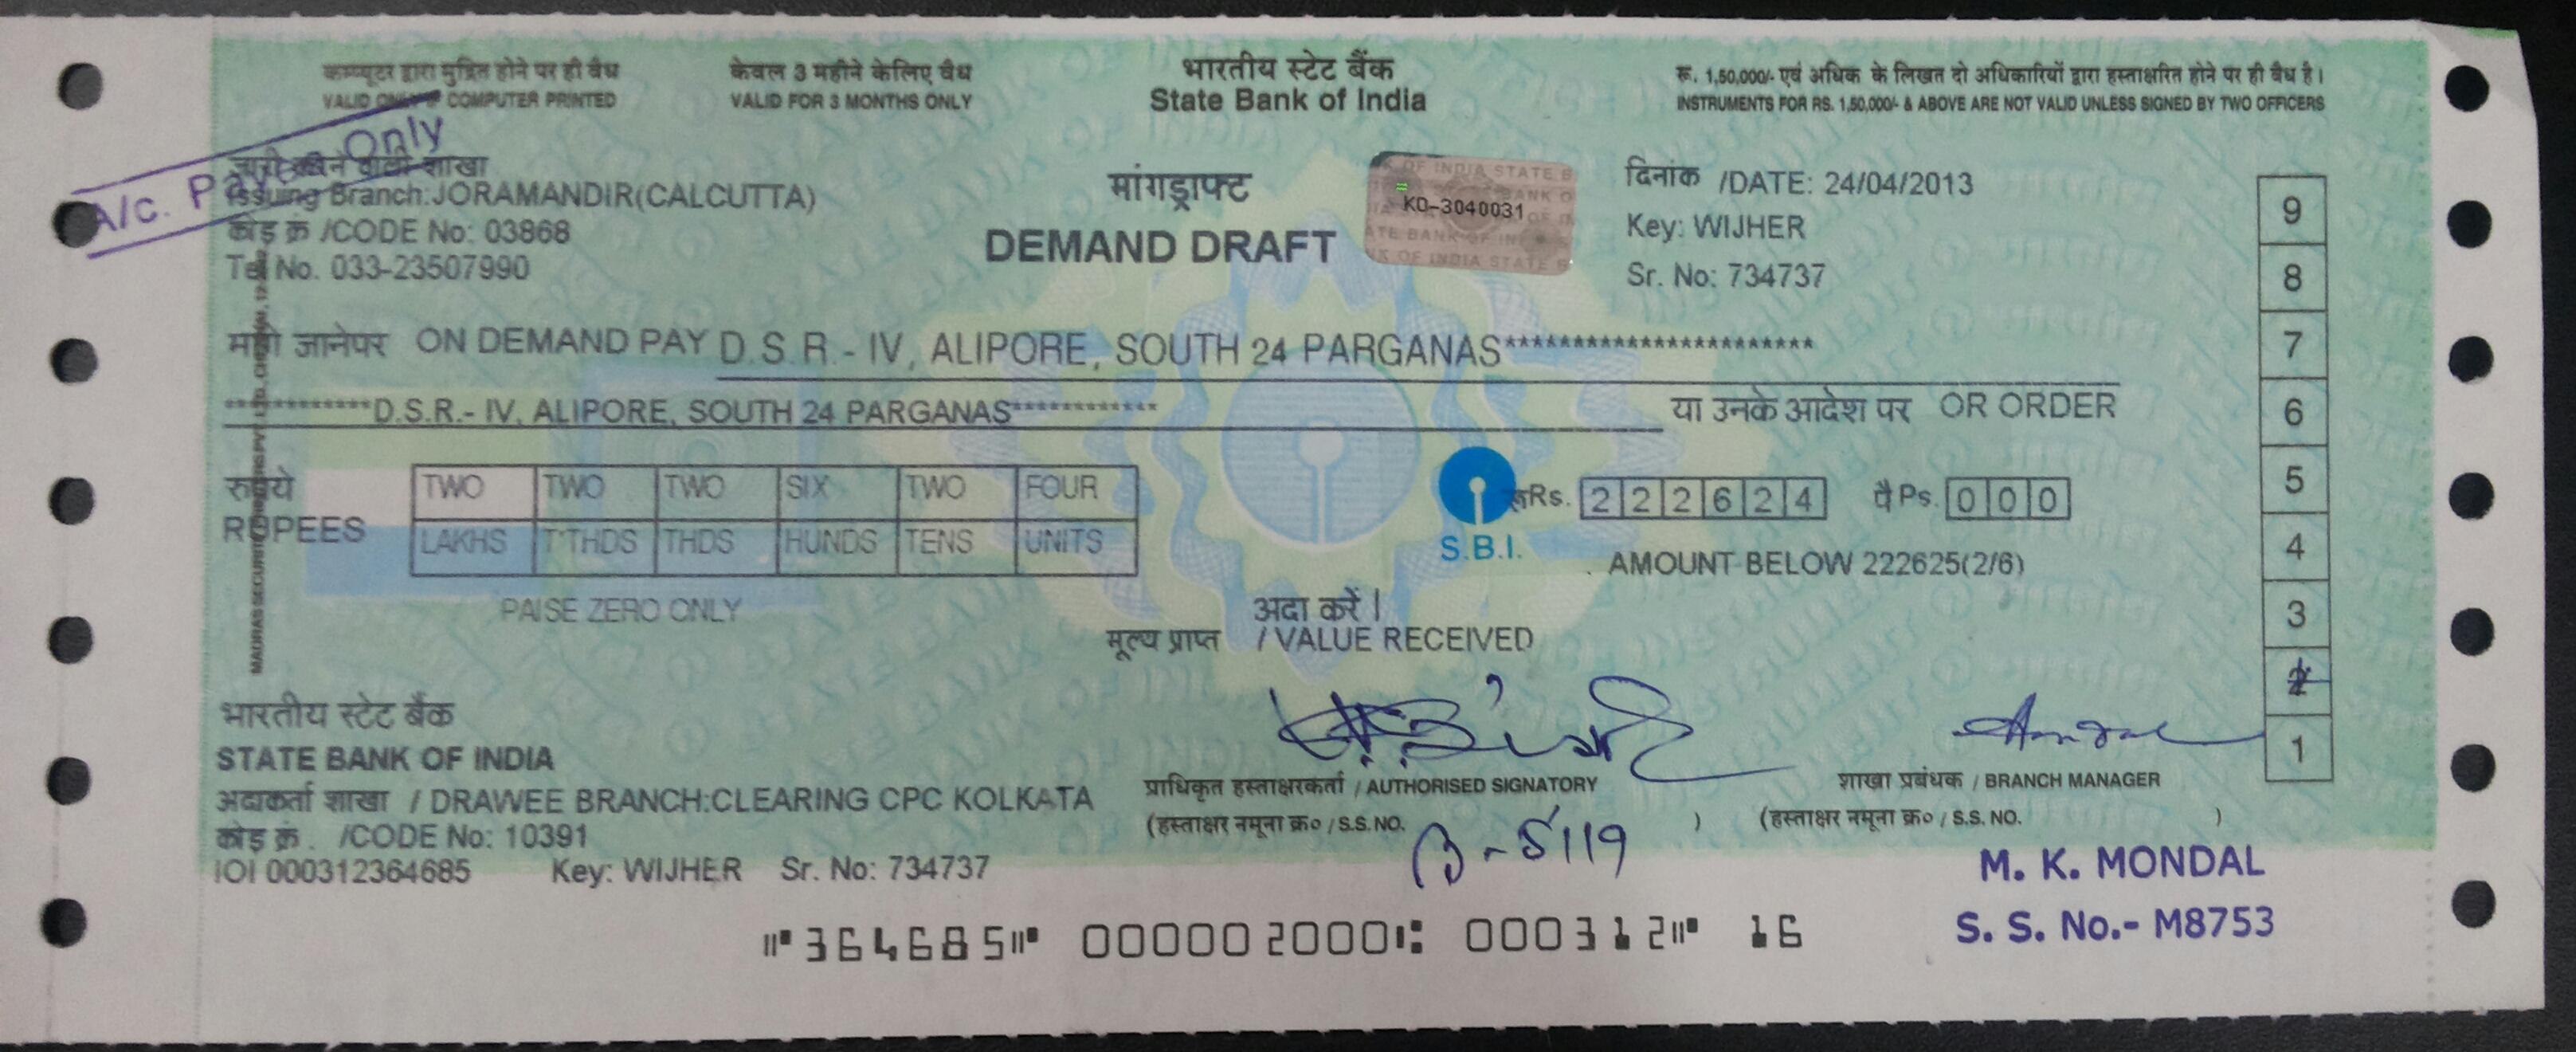 DEMAND DRAFT Stop Payment Of DD Cancel The DD And Issue